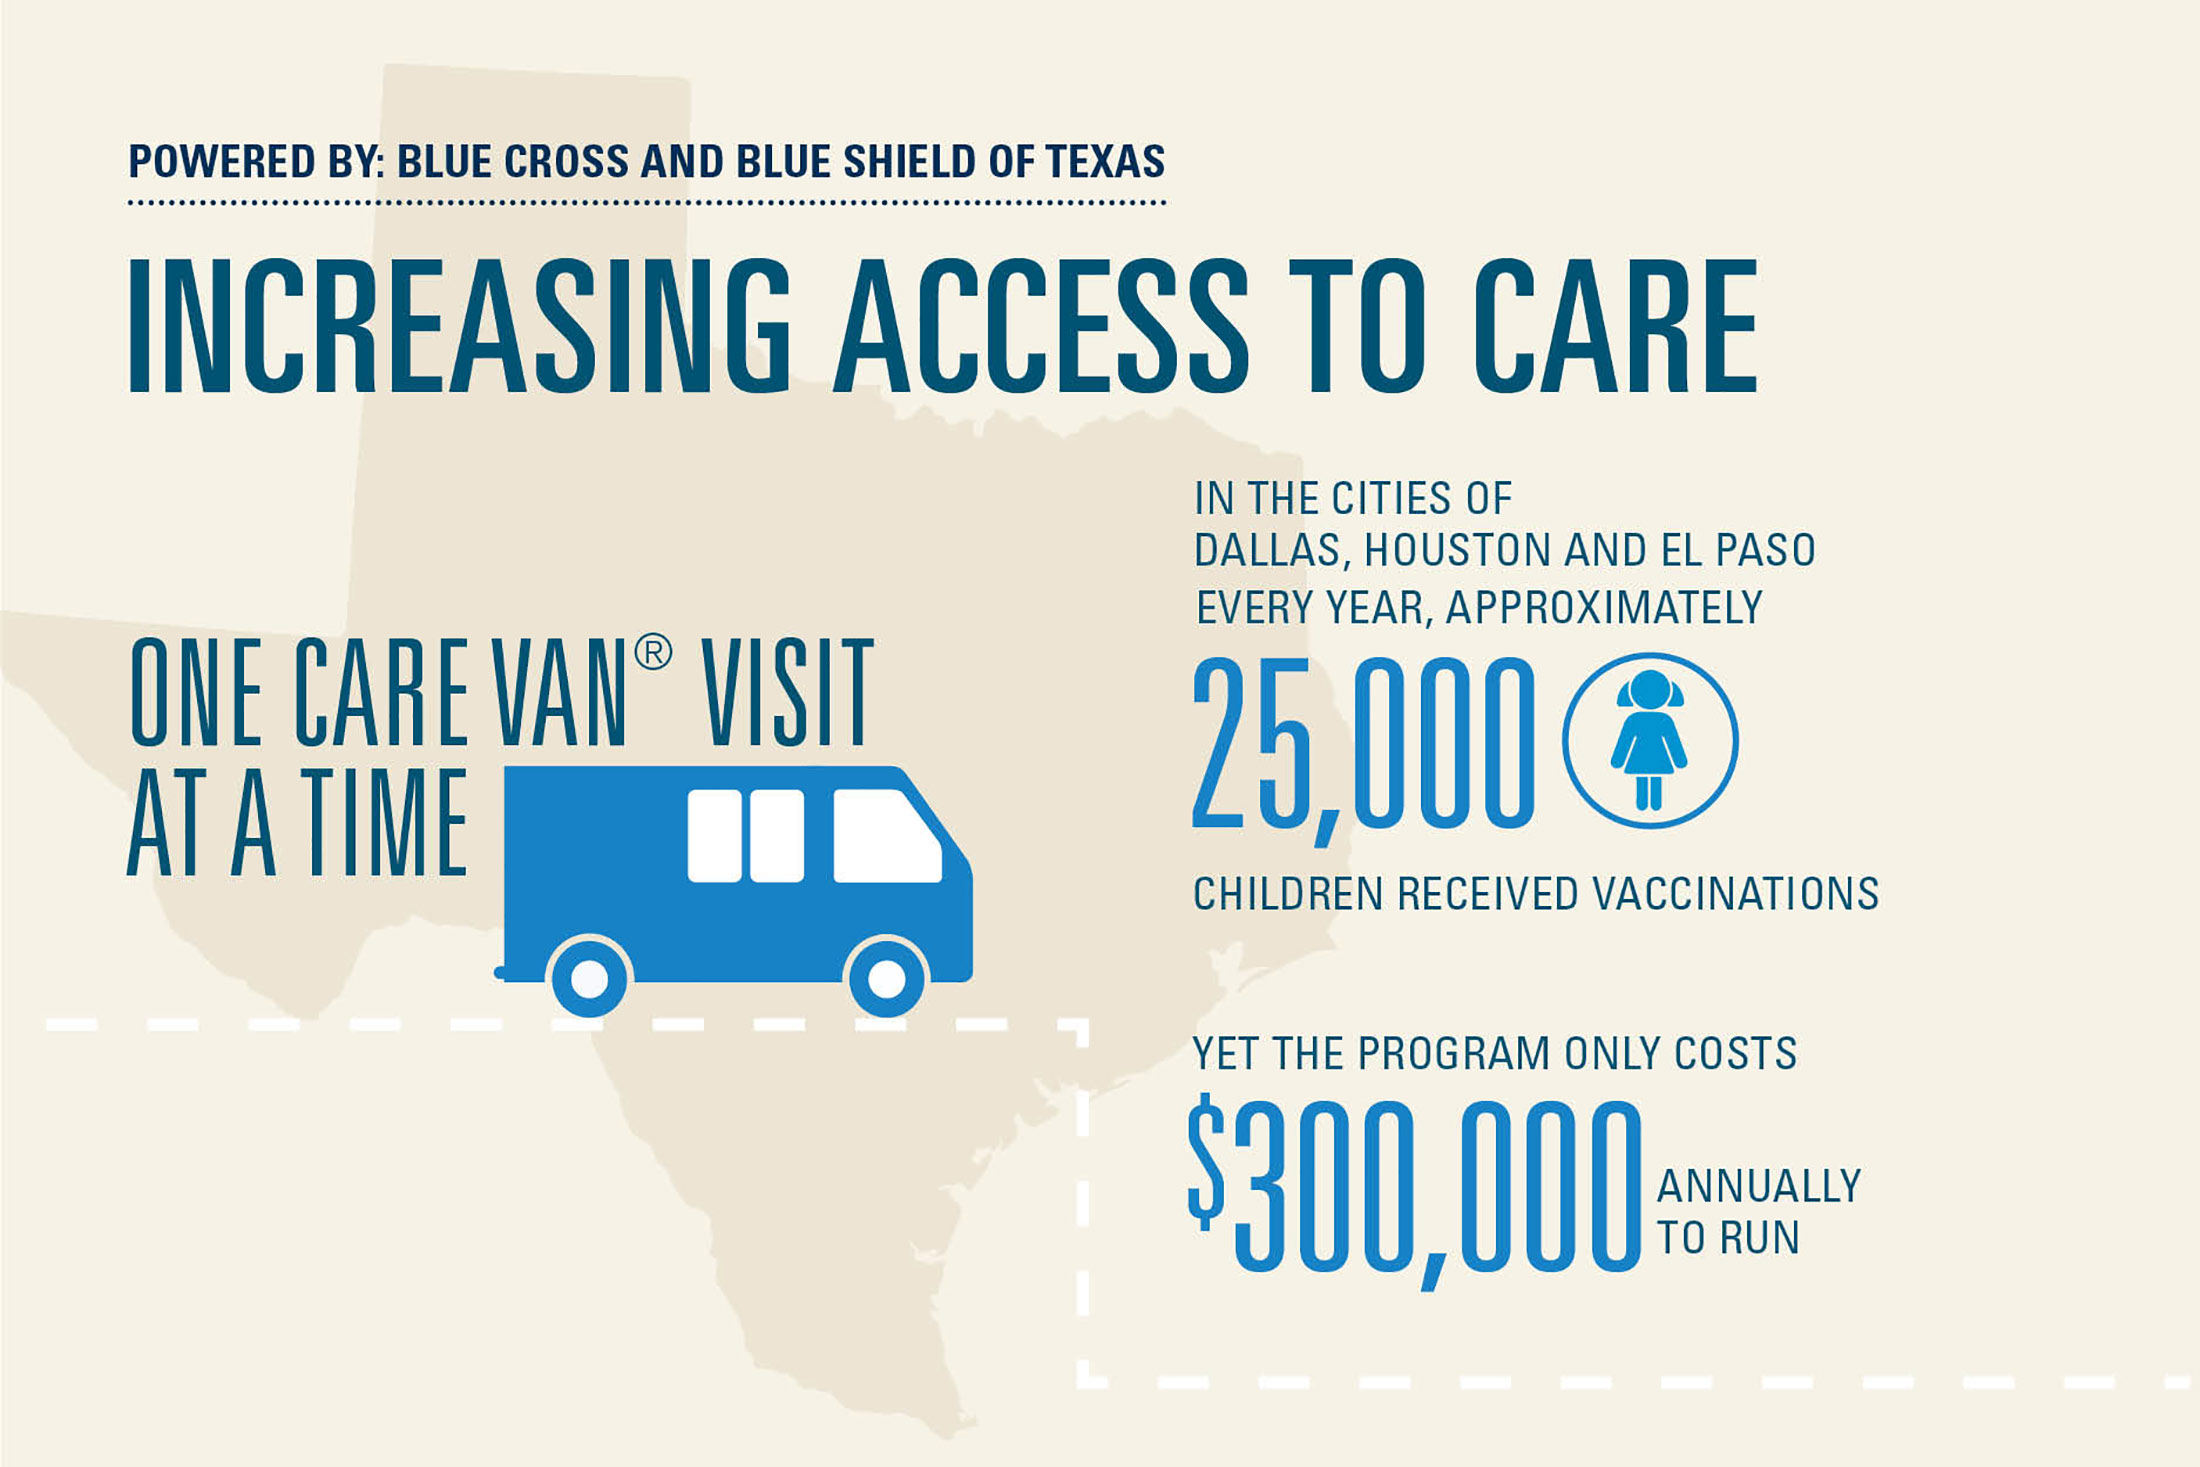 Increasing access to care infographic